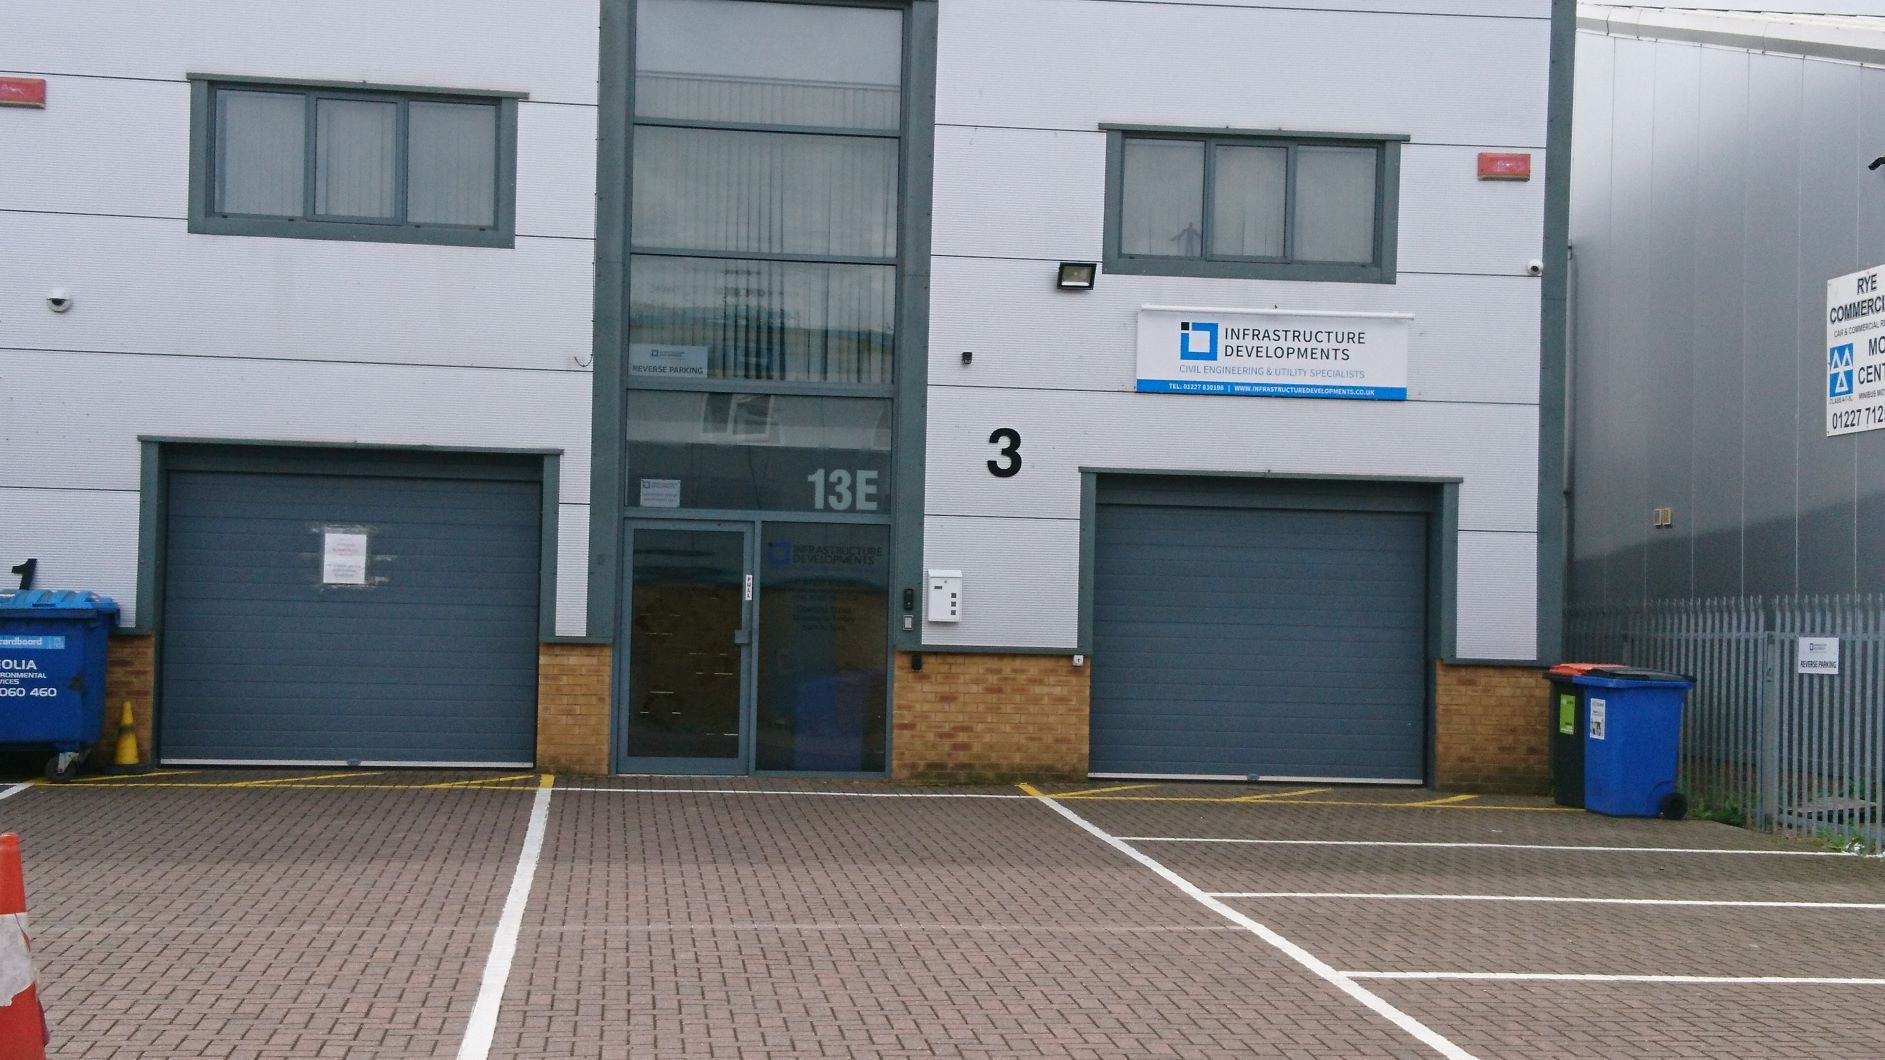 0 bed Warehouse for rent in Canterbury. From Azure Property Consultants